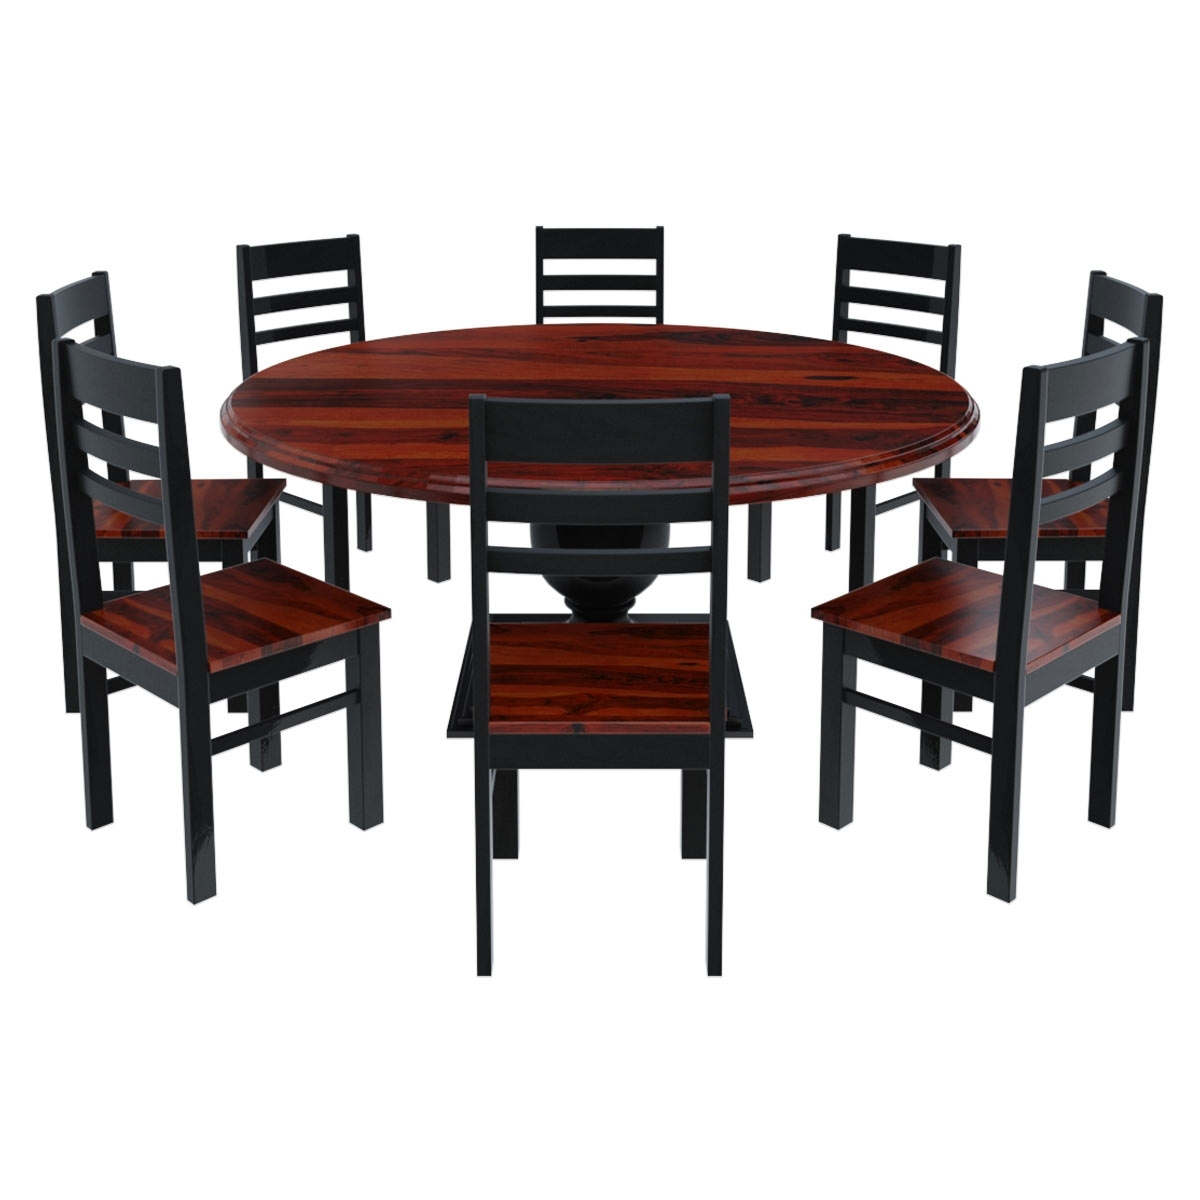 Dining Tables 8 Chairs Set For Most Recently Released Illinois Modern Two Tone Large Round Dining Table With 8 Chairs Set (Gallery 16 of 25)